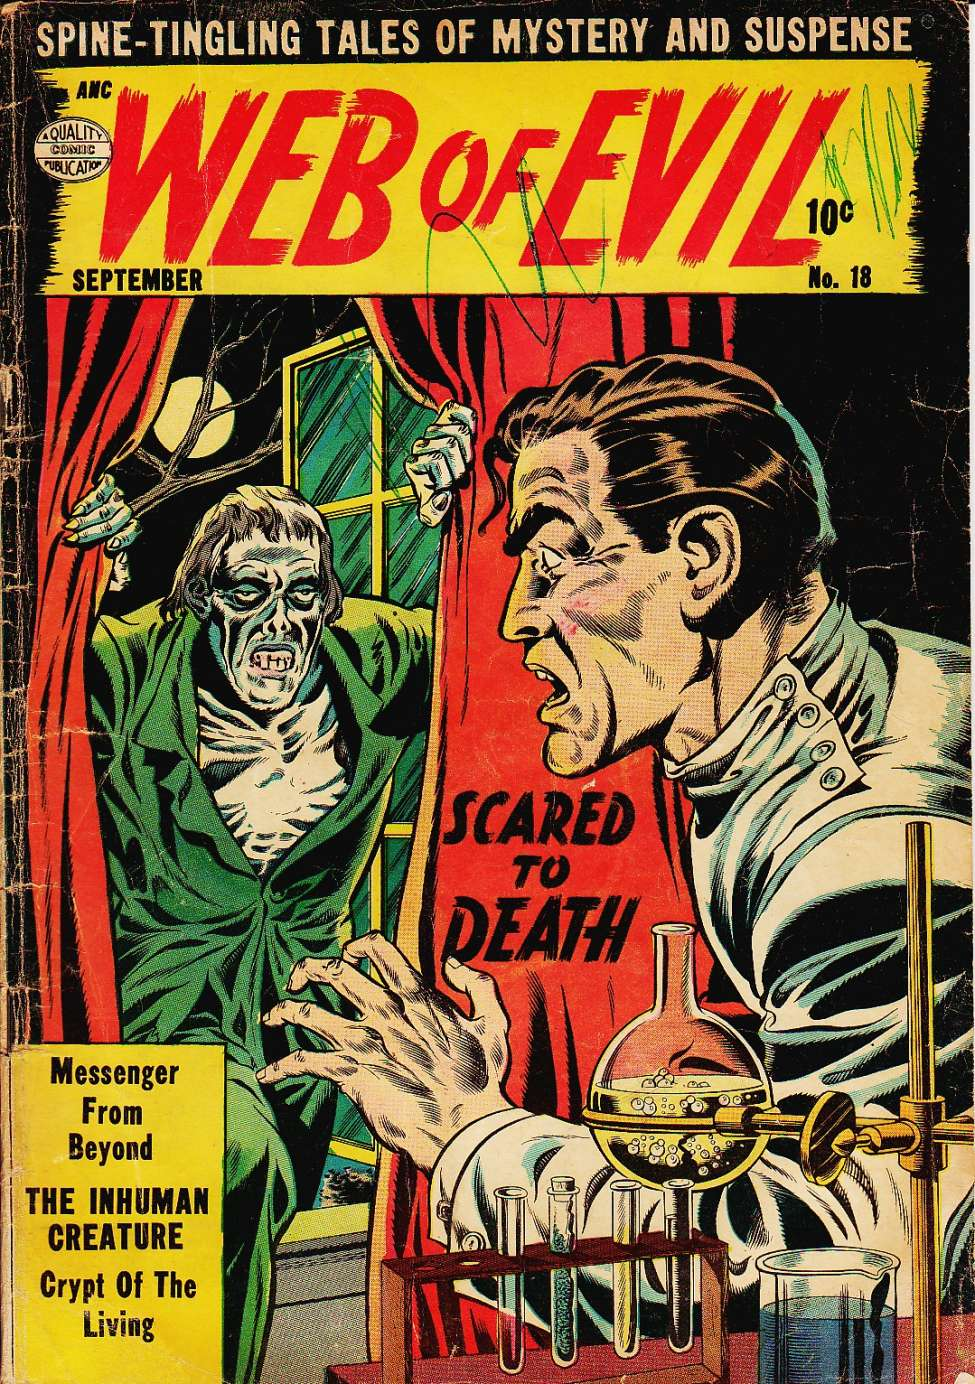 Comic Book Cover For Web of Evil #18